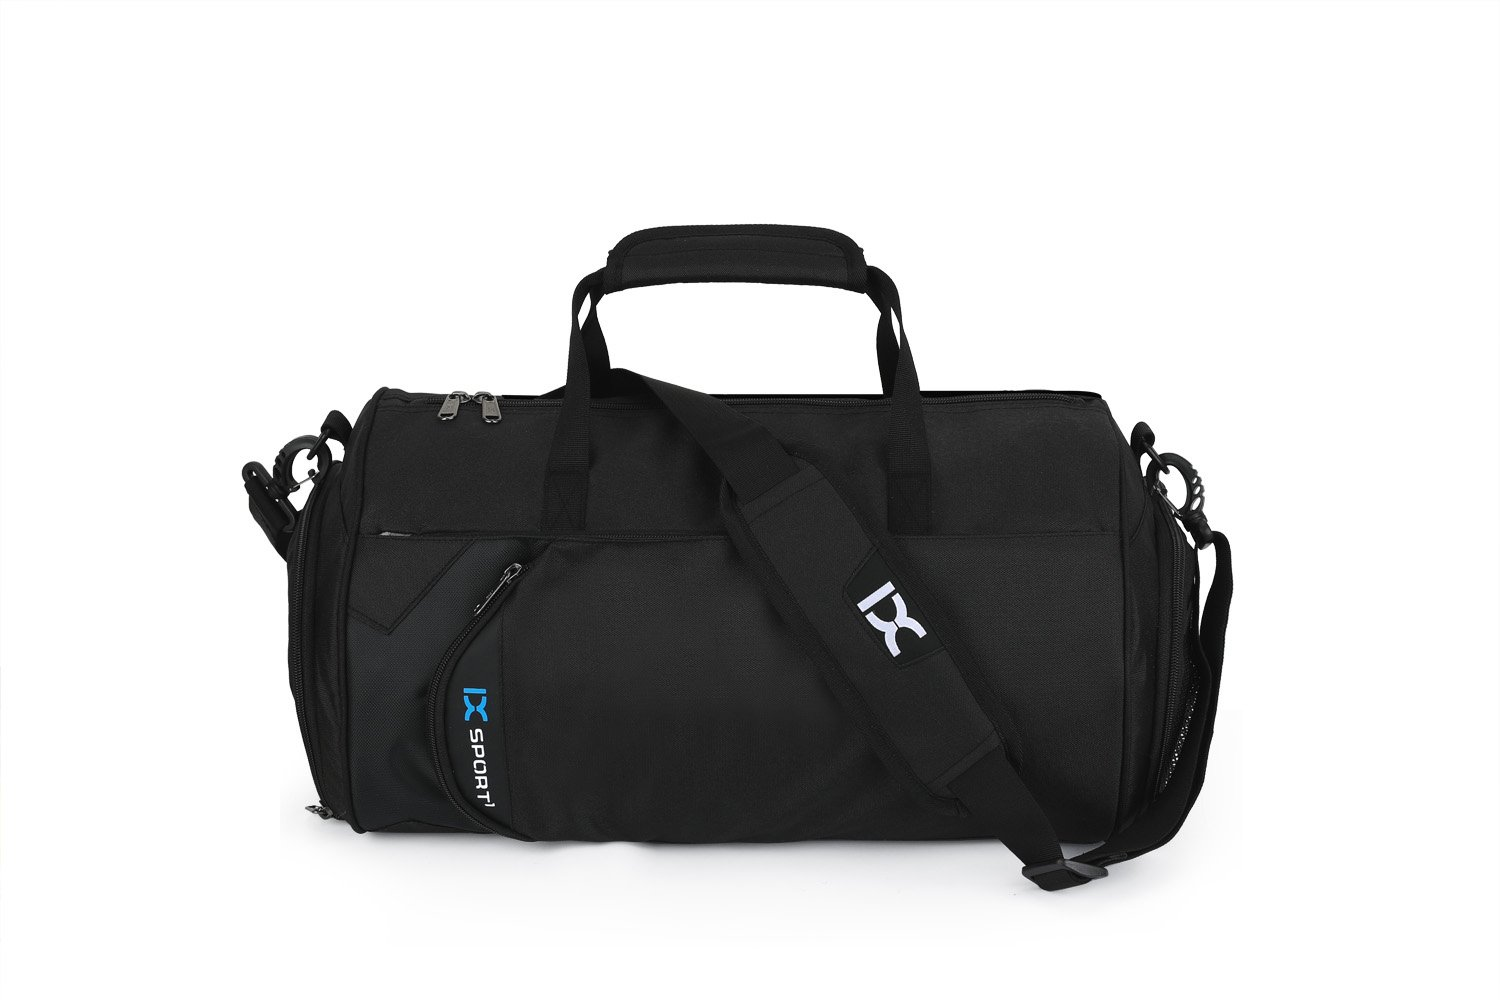 4725ec25c43 INOXTO Fitness Sport Small Gym Bag with Shoes Compartment Waterproof Travel  ...